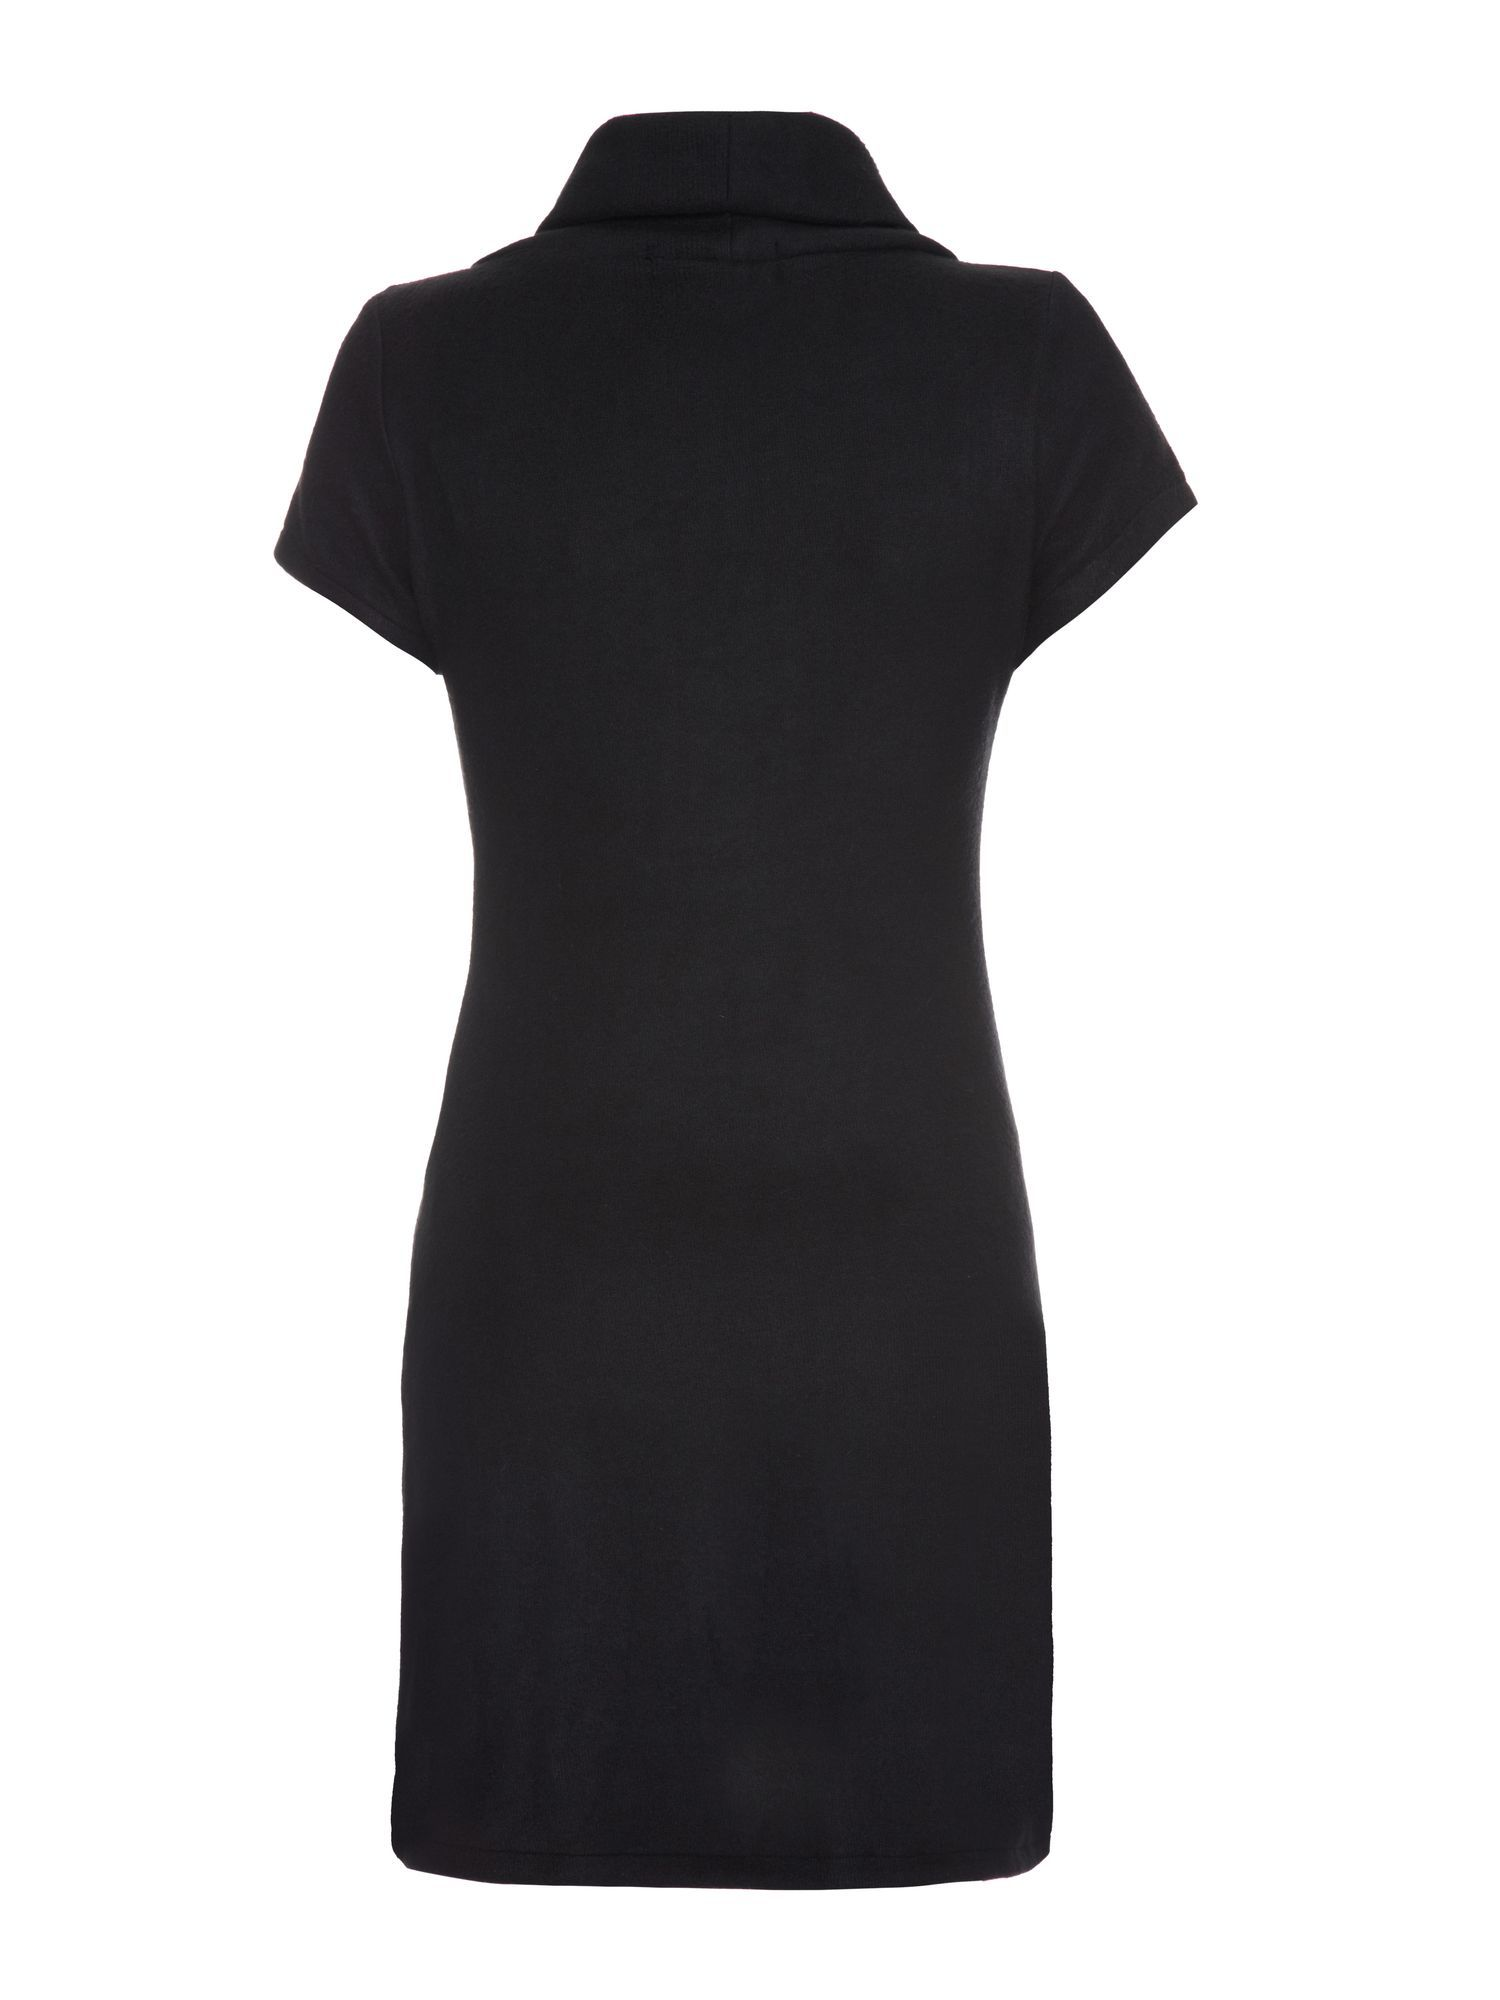 Cowl neck plain dress